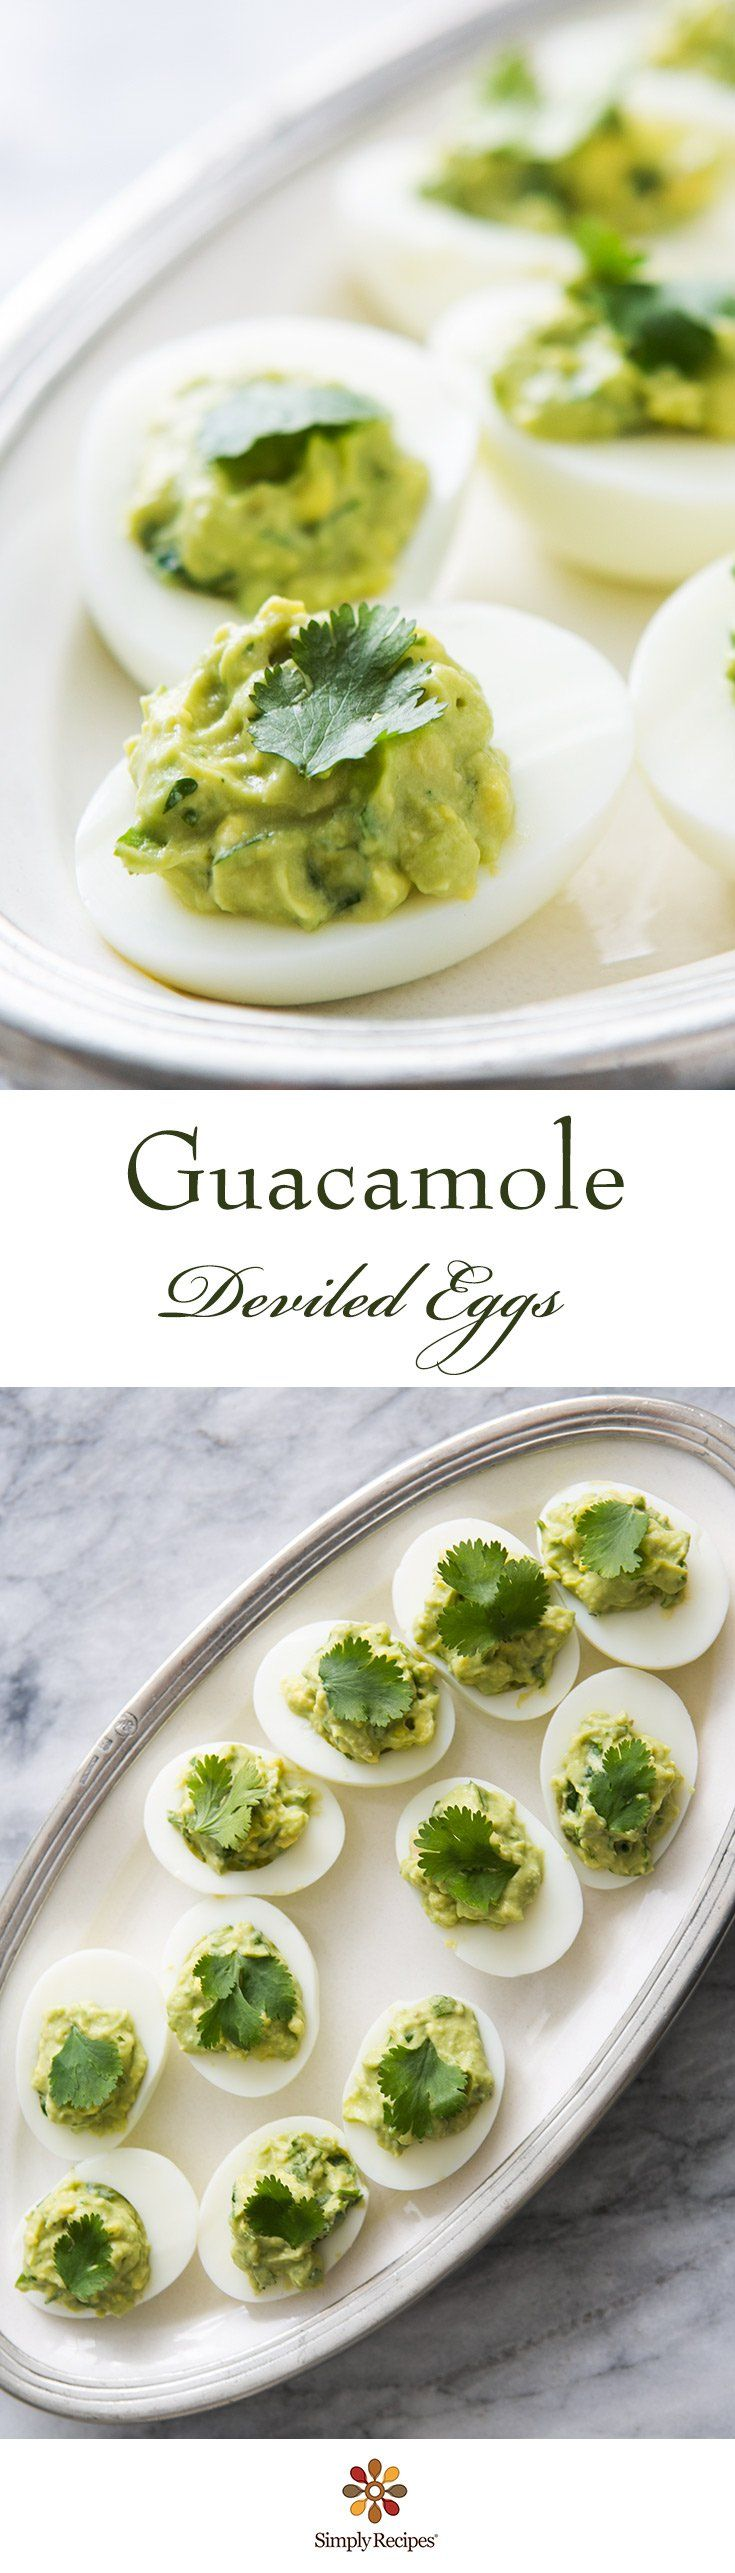 Guacamole Deviled Eggs ~ Green deviled eggs! Hard boiled egg halves, stuffed with avocado guacamole. ~ SimplyRecipes.com